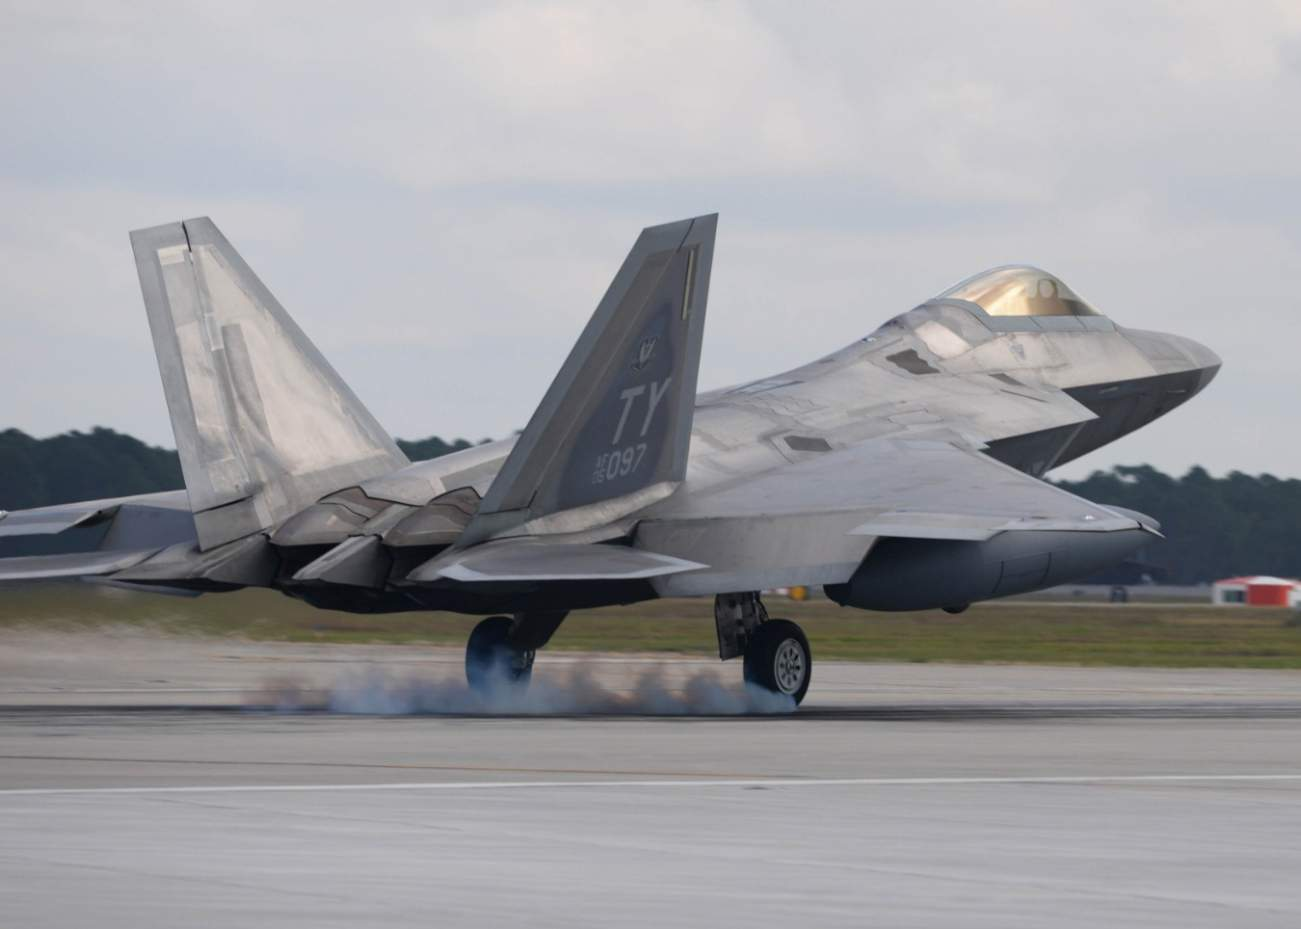 Surprise: Iran Never Saw This F-22 Stealth Fighter Coming